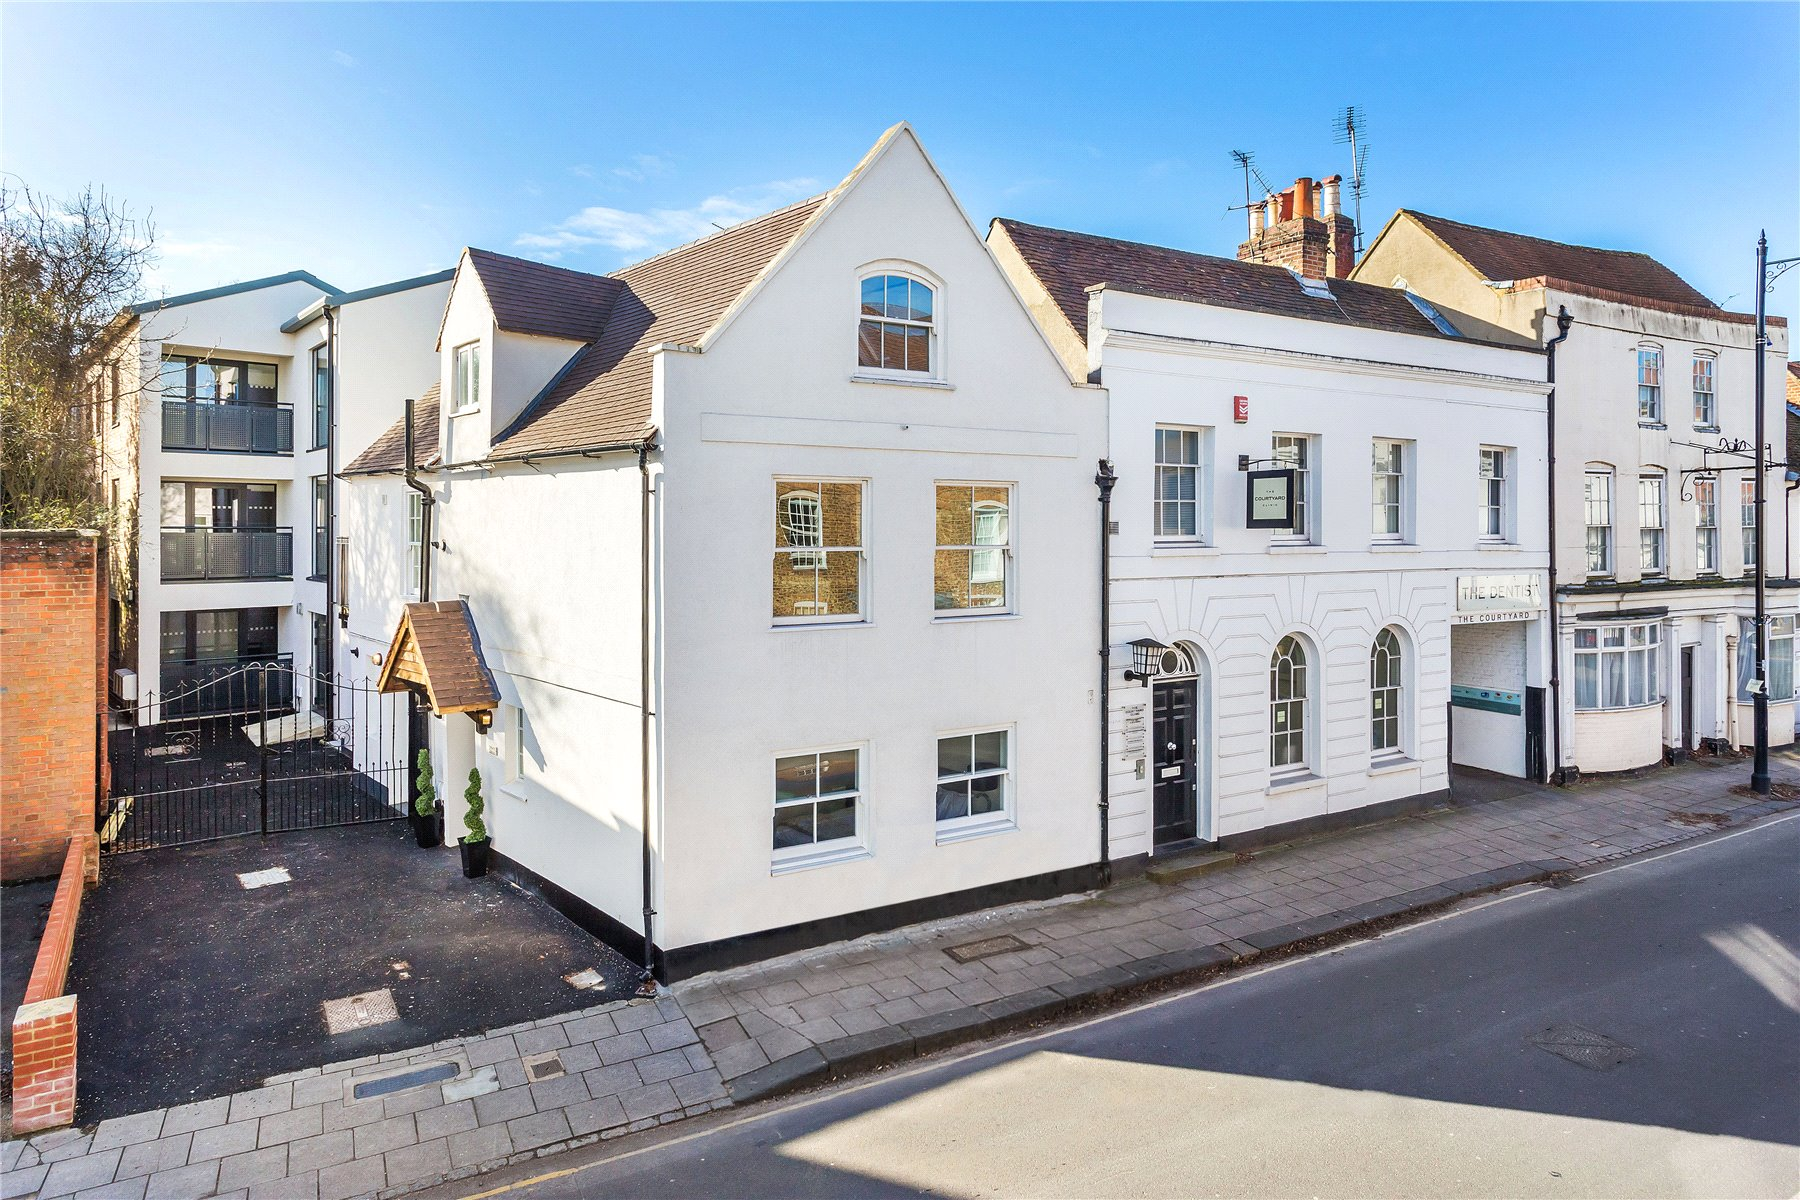 3 Bedrooms Apartment Flat for sale in Neilson Rise, 32 London Street, Chertsey, Surrey, KT16